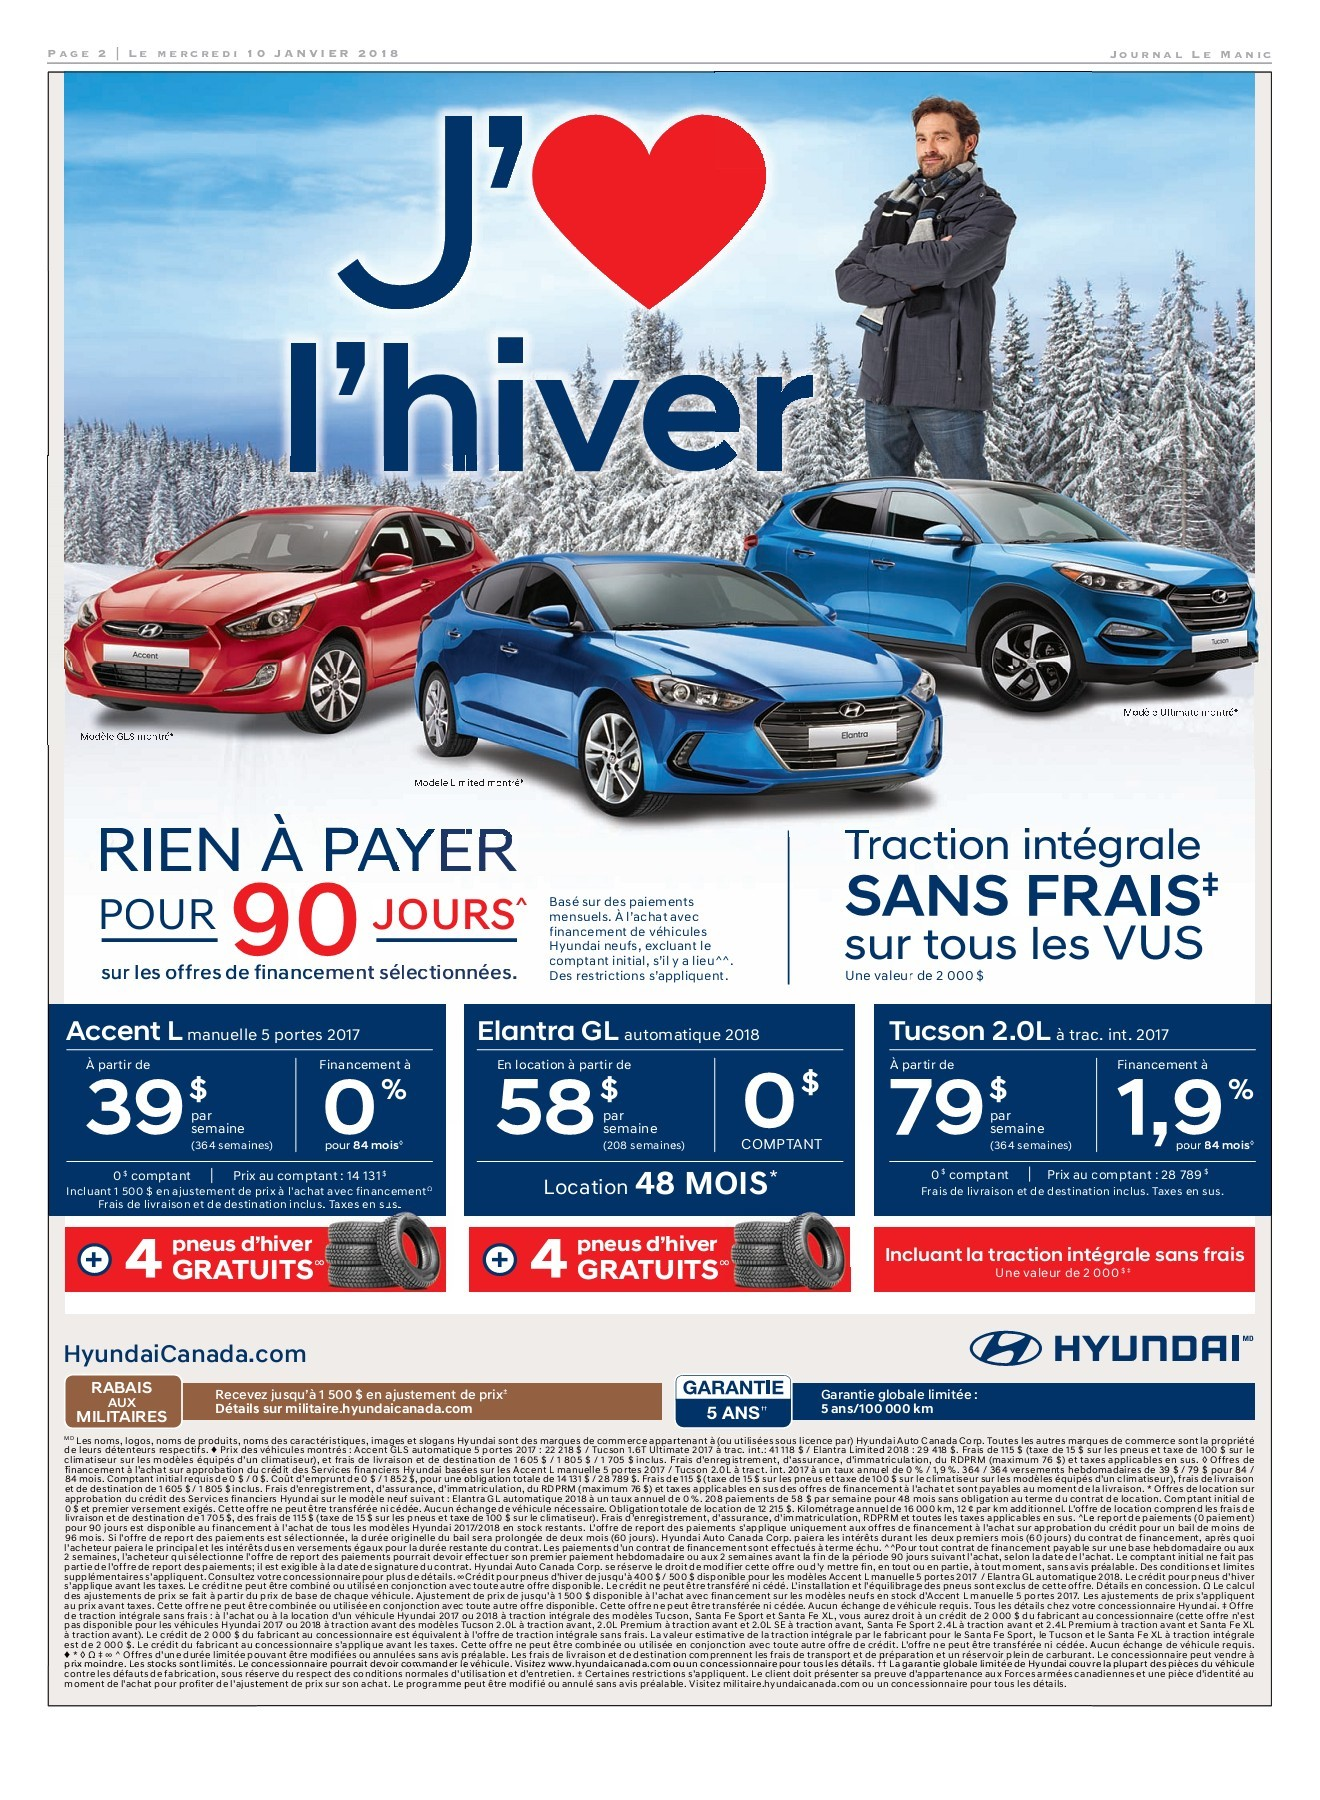 Meubles Accent Dolbeau-mistassini Le Manic 10 Janvier 2018 Pages 1 32 Text Version Fliphtml5